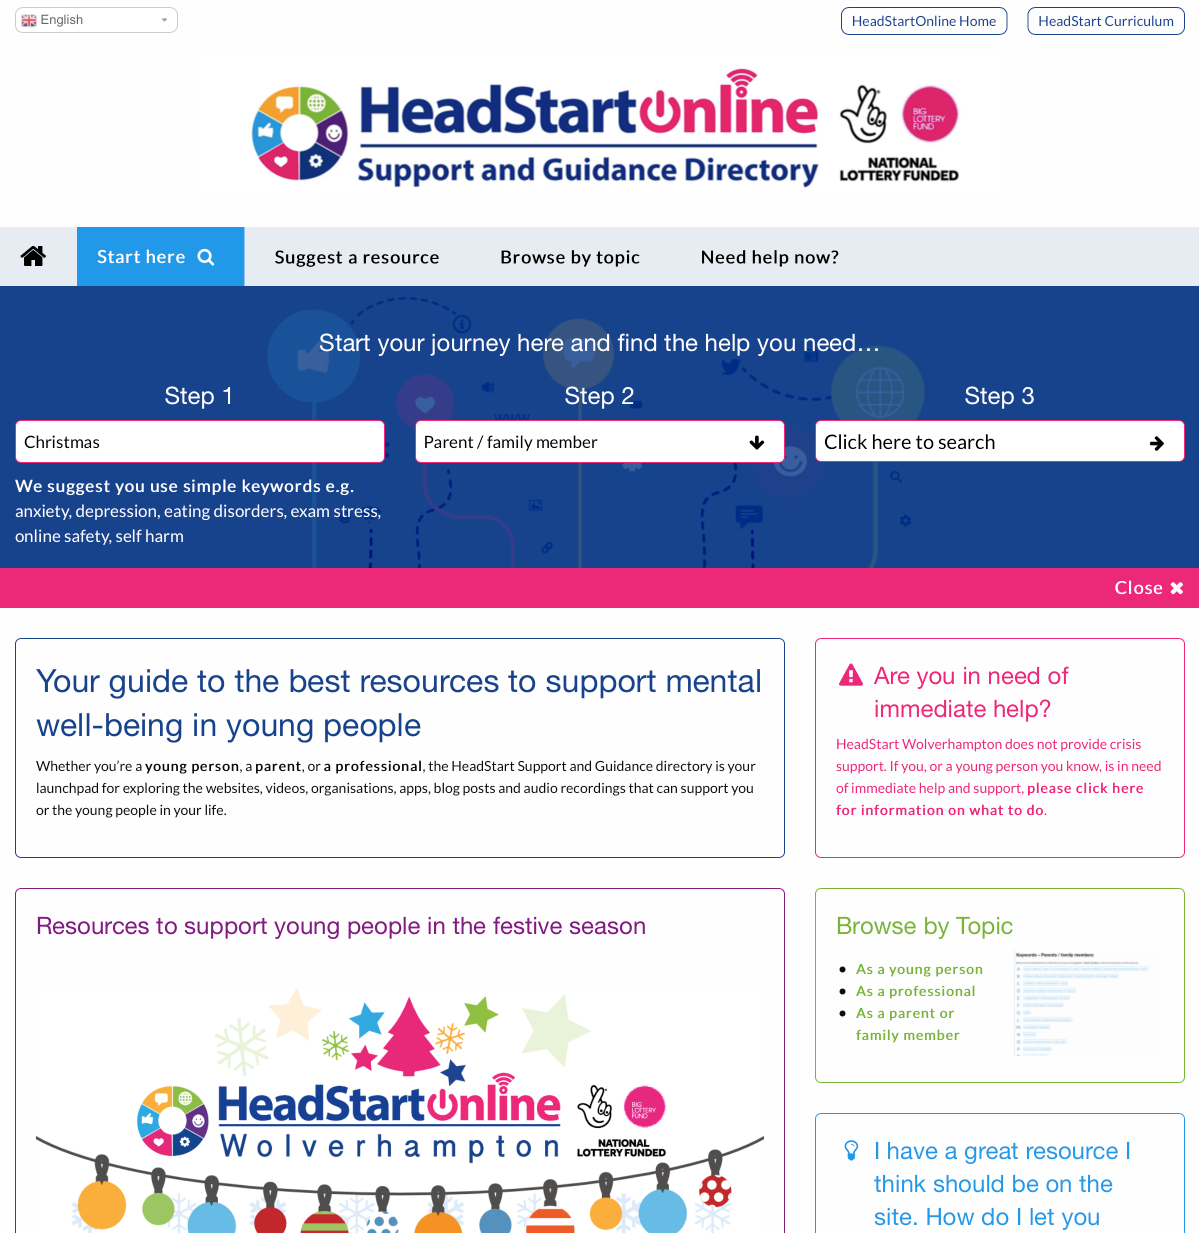 Visit the new HeadStartOnline Support and Guidance site